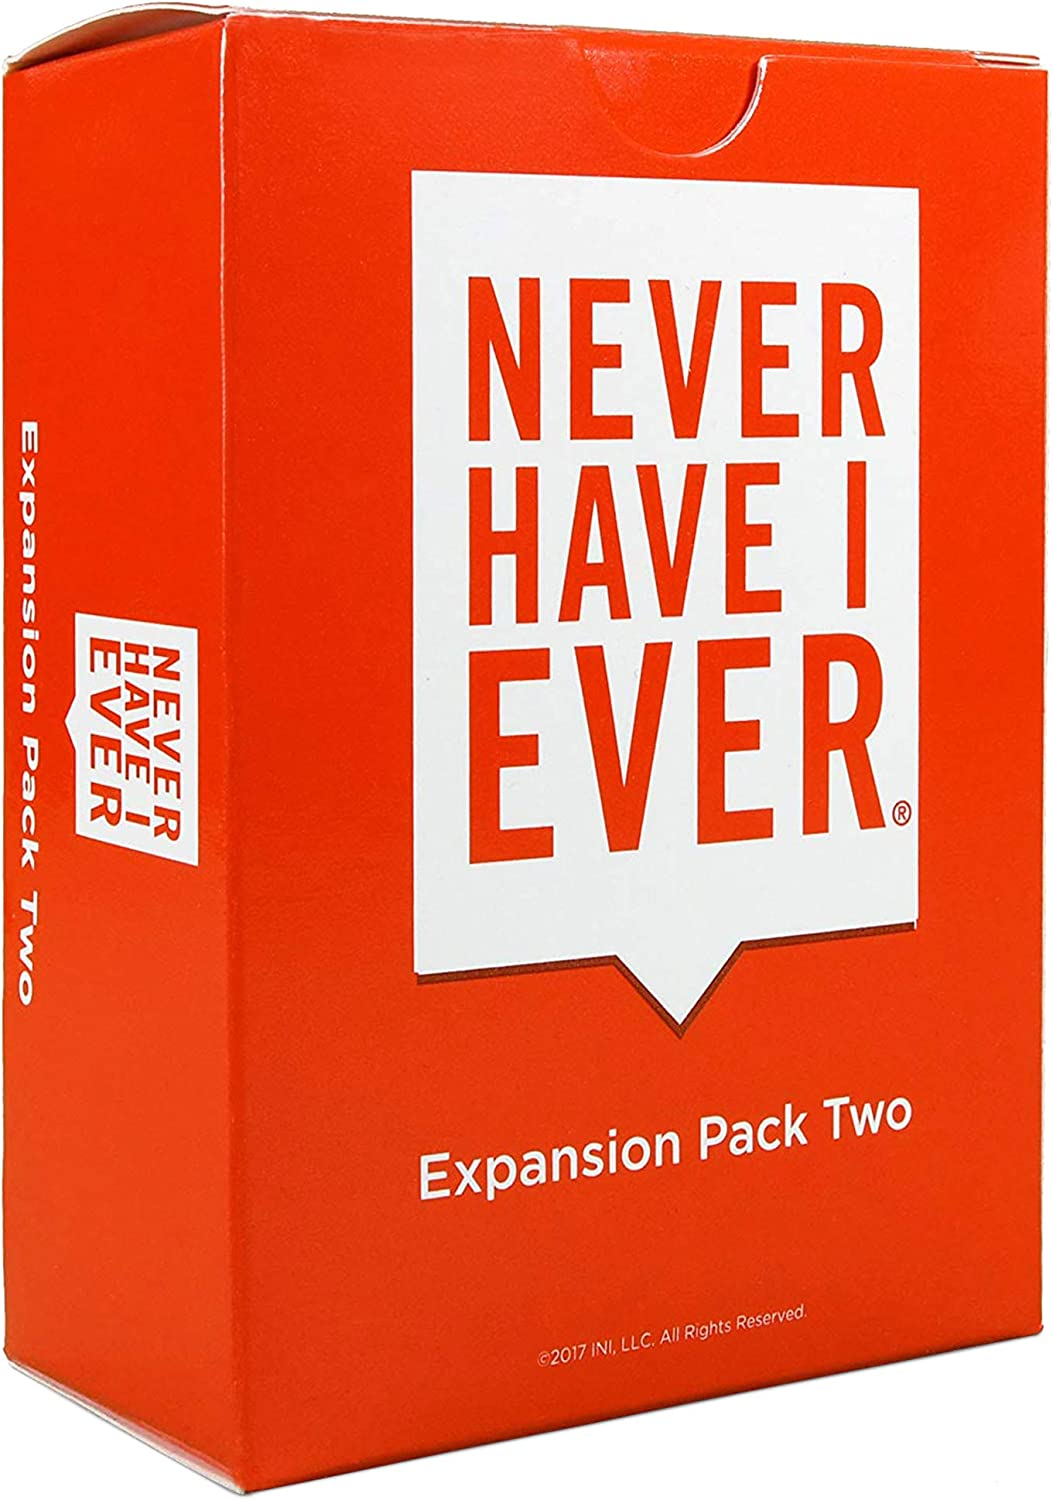 Never Have I Ever Expansion Pack Two